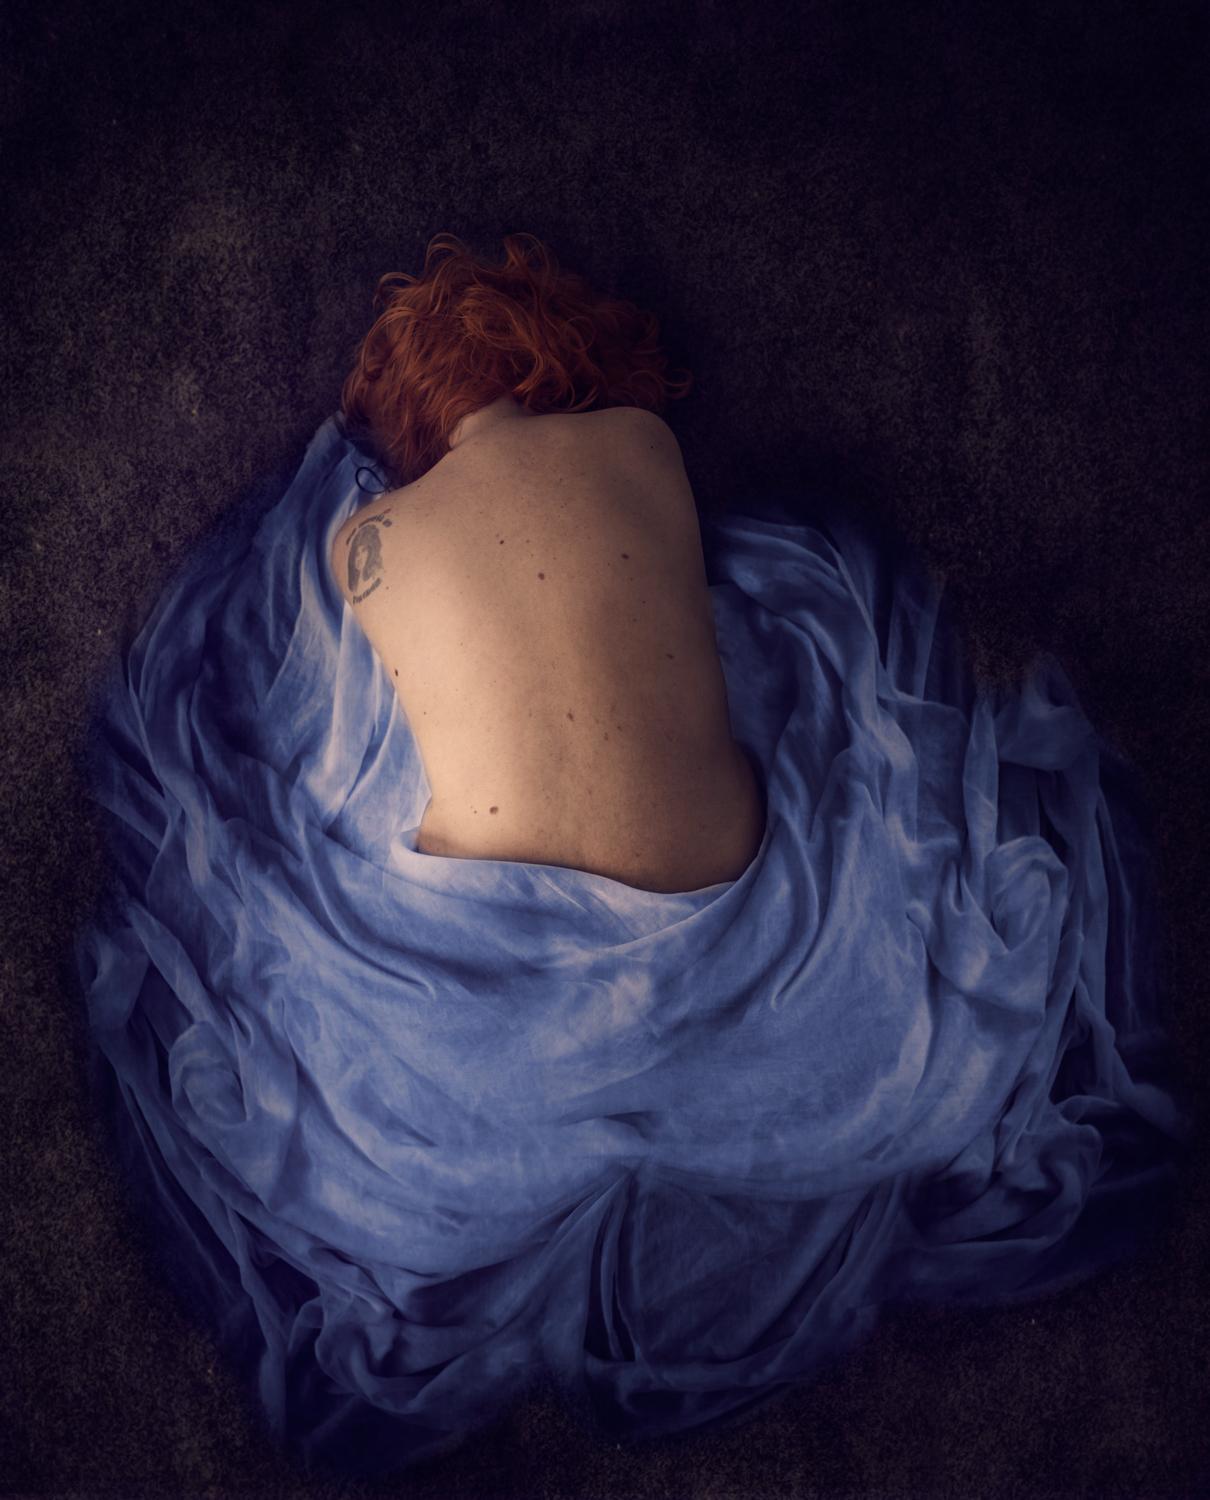 semi nude girl in a blue wrap - Tips to Get the Best Out of a Model Shoot